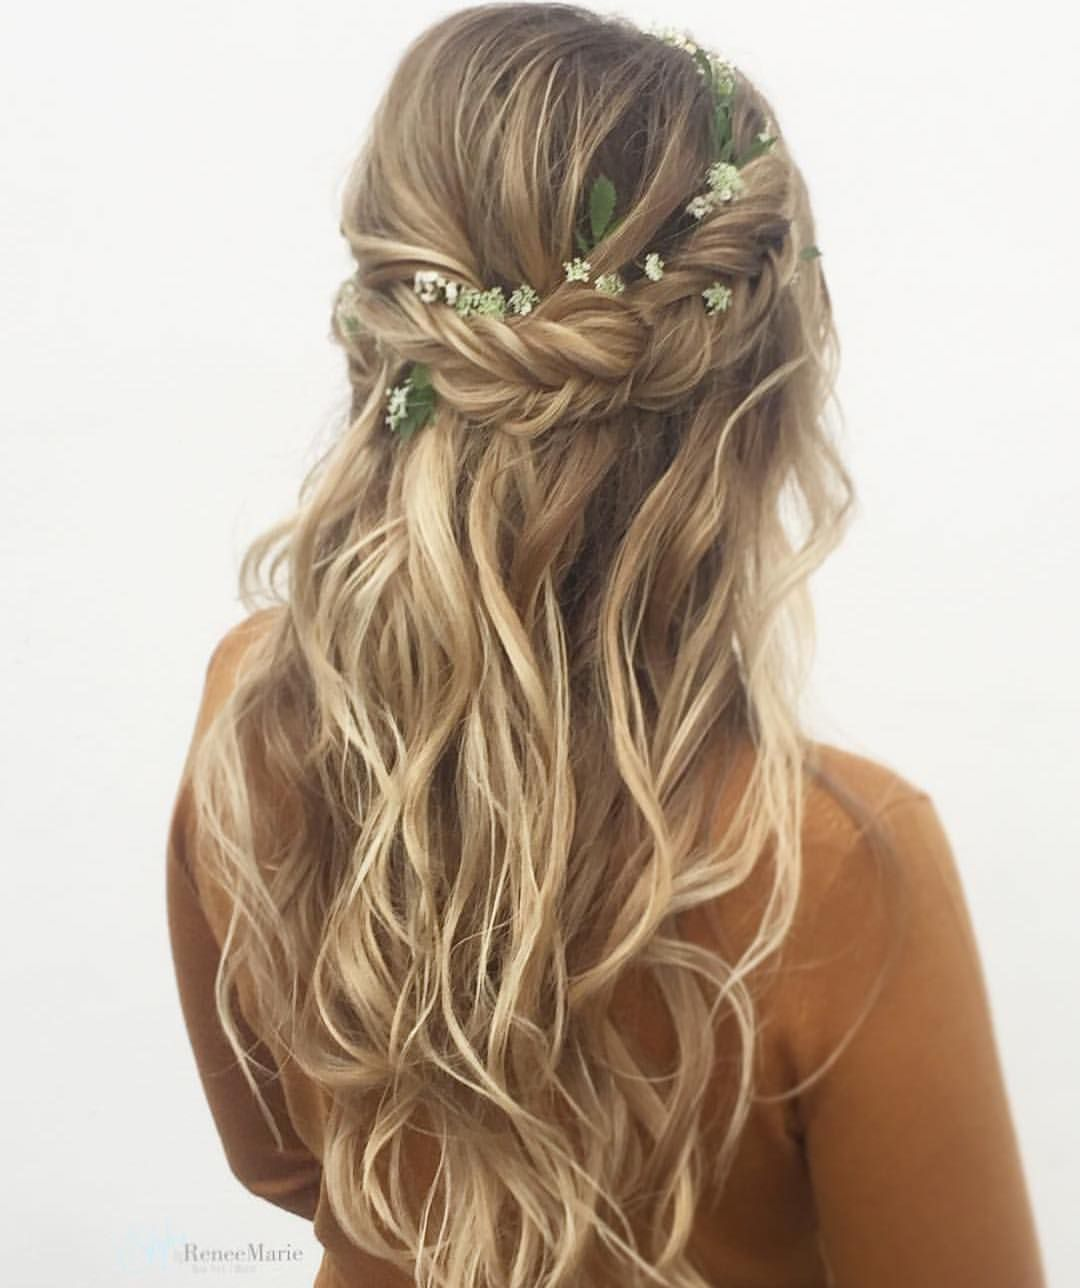 Boho Bridal Hairstyles For Carefree Bride: Boho Wedding Hair, Wedding Hair